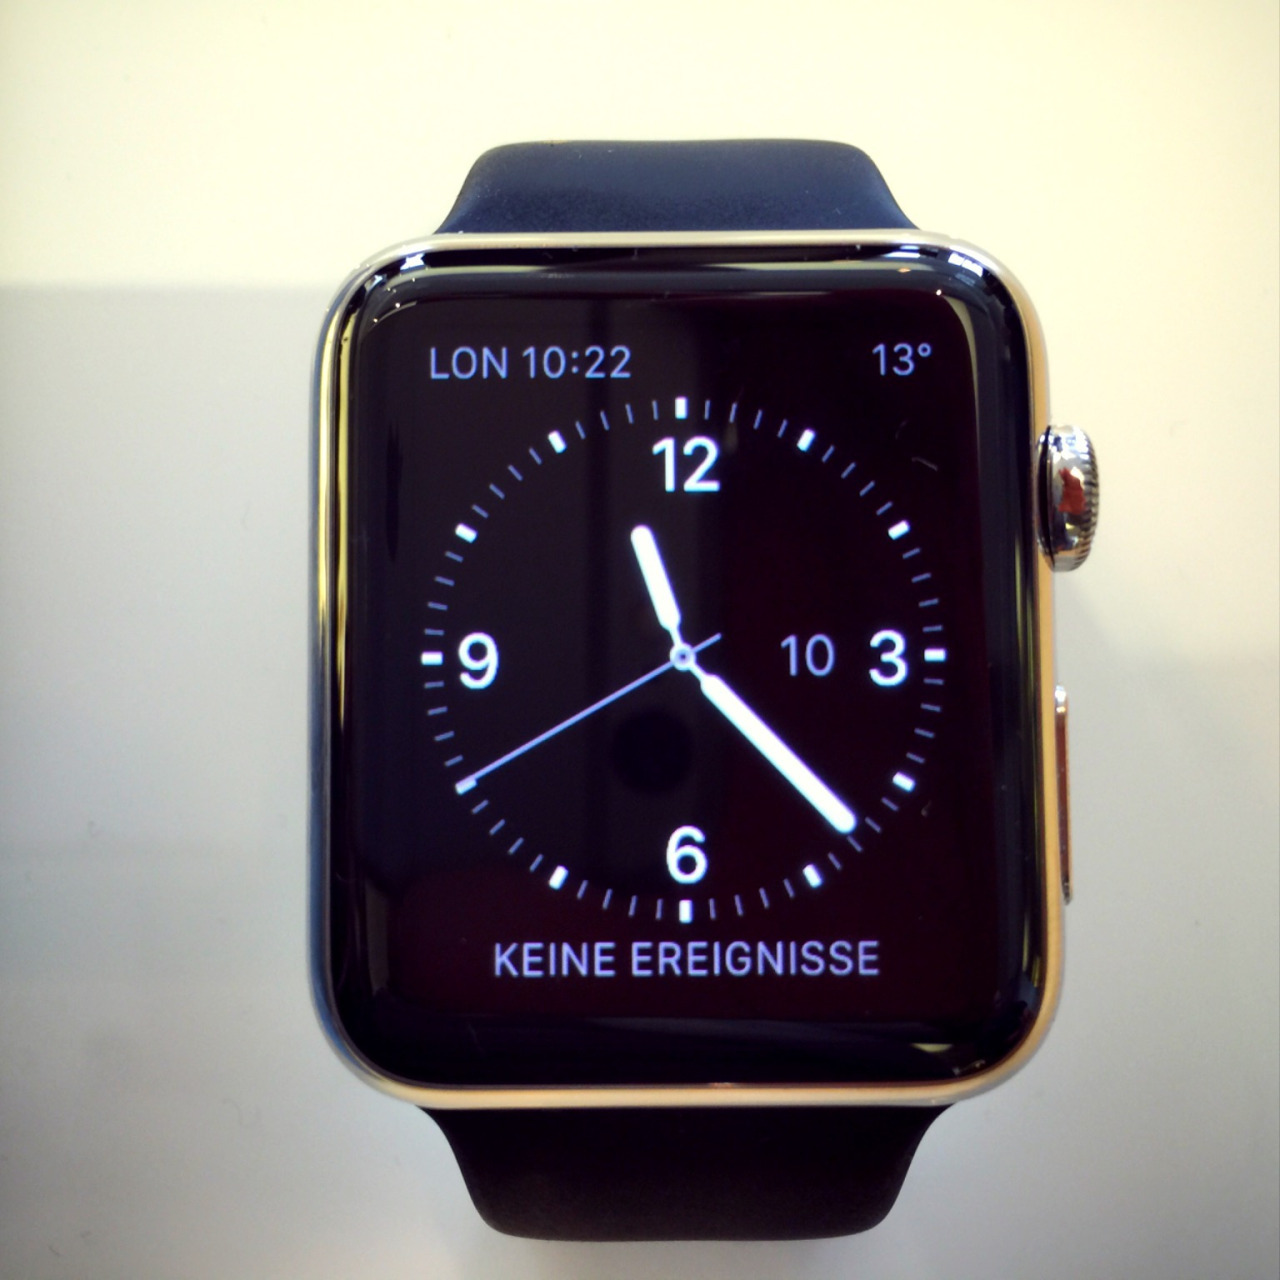 Trying on the Apple Watch - 7